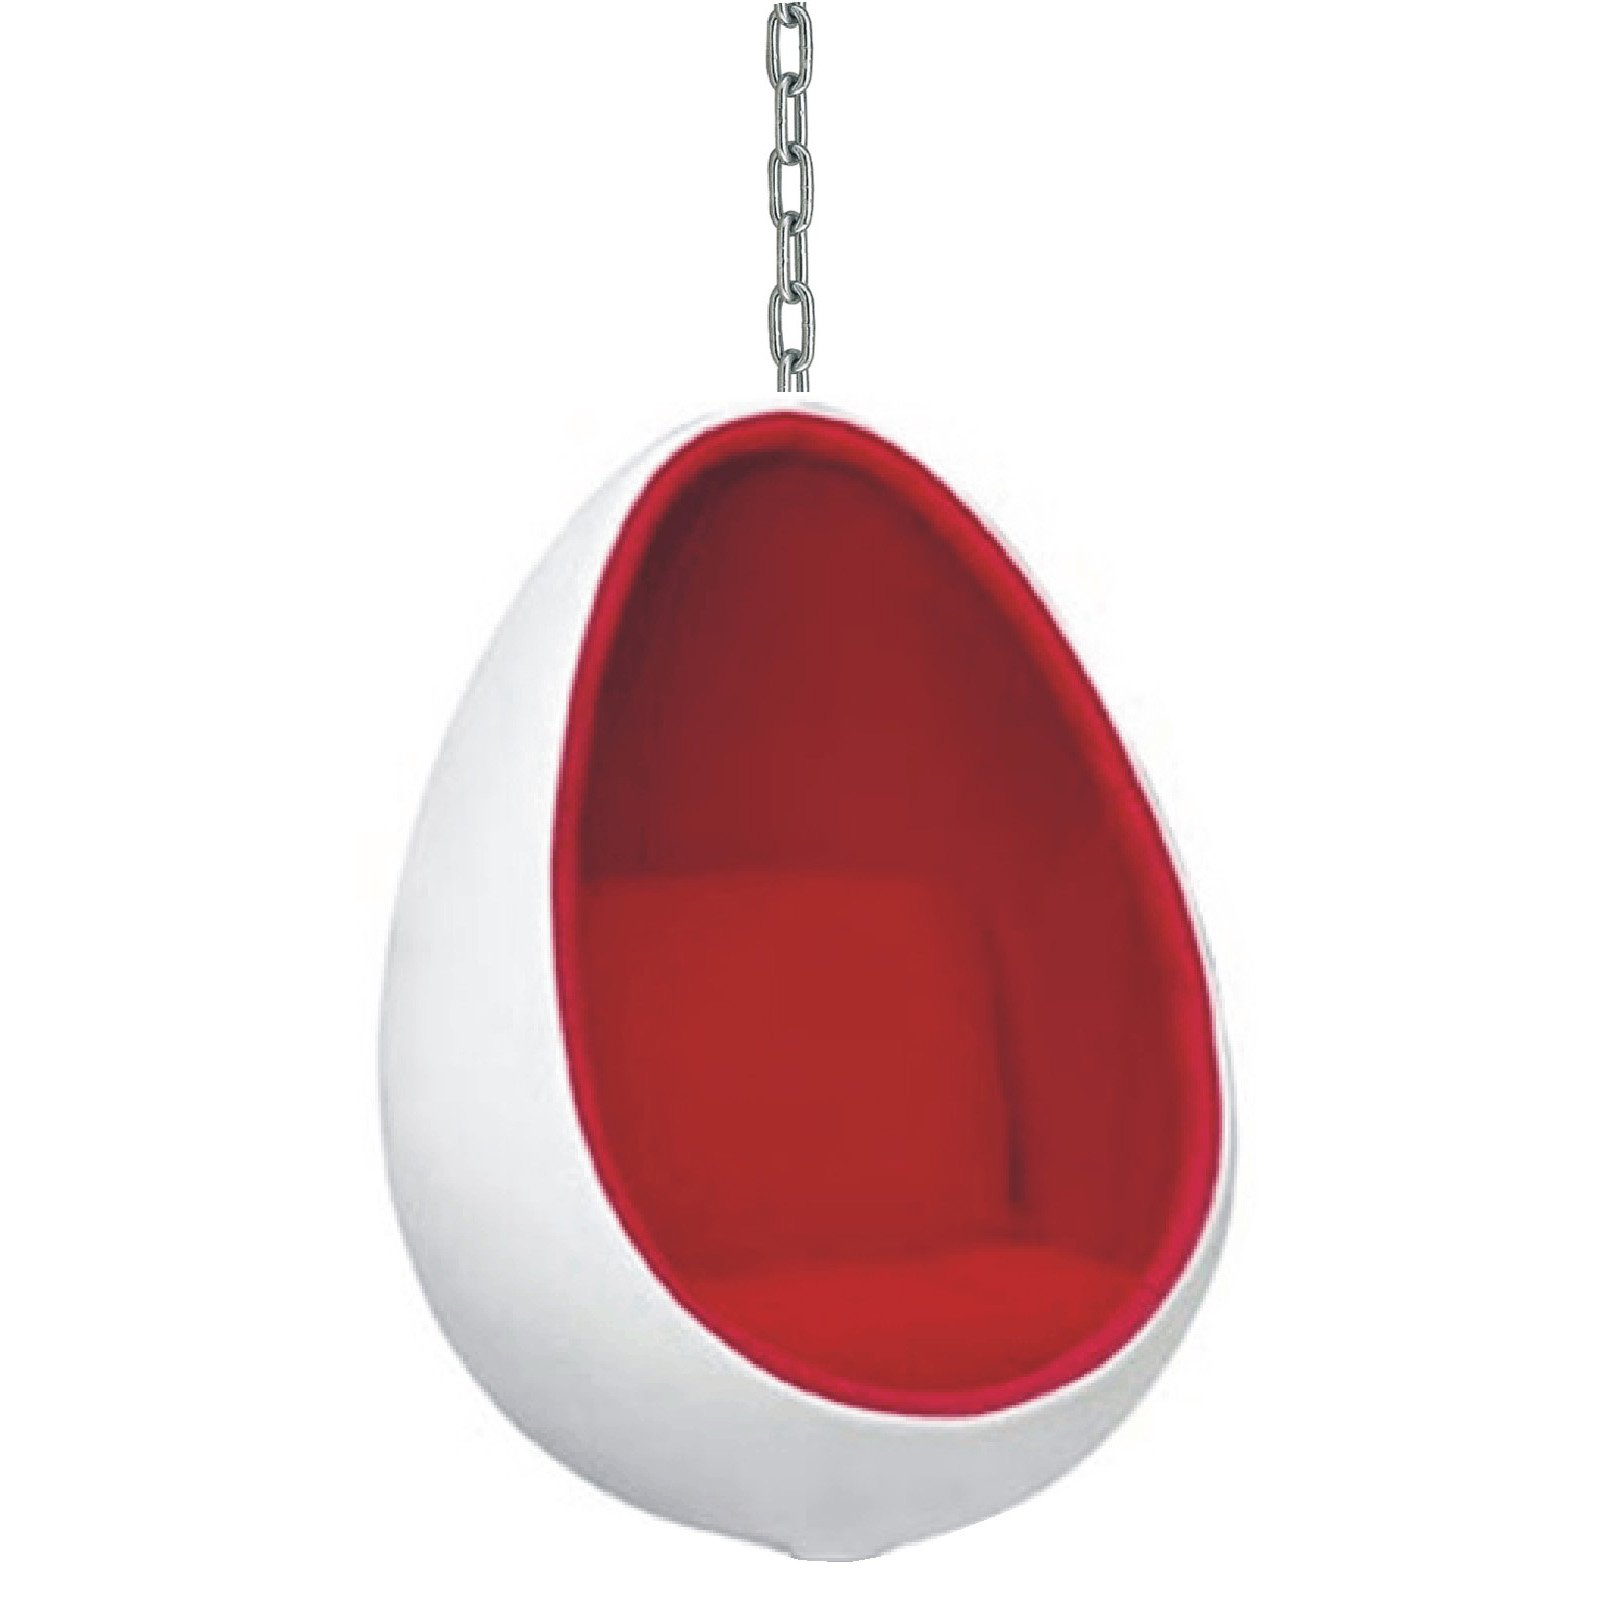 Hanging Egg Chair Walmart